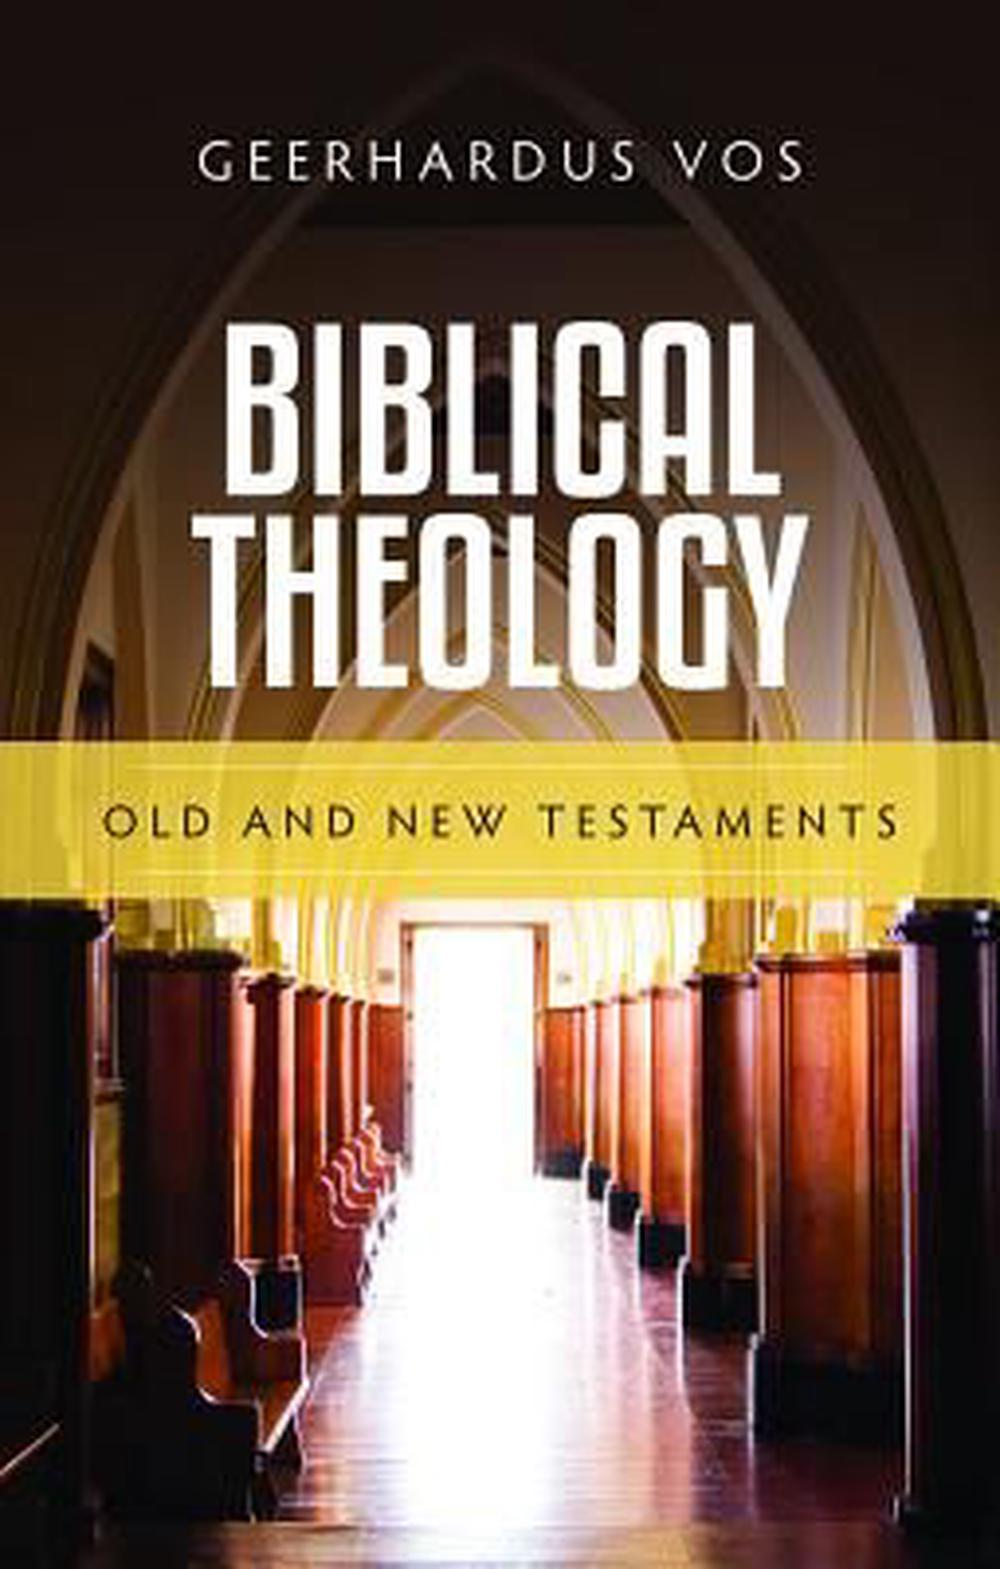 Biblical Theology: Old and New Testaments by Geerhardus Vos, ISBN: 9781848714328